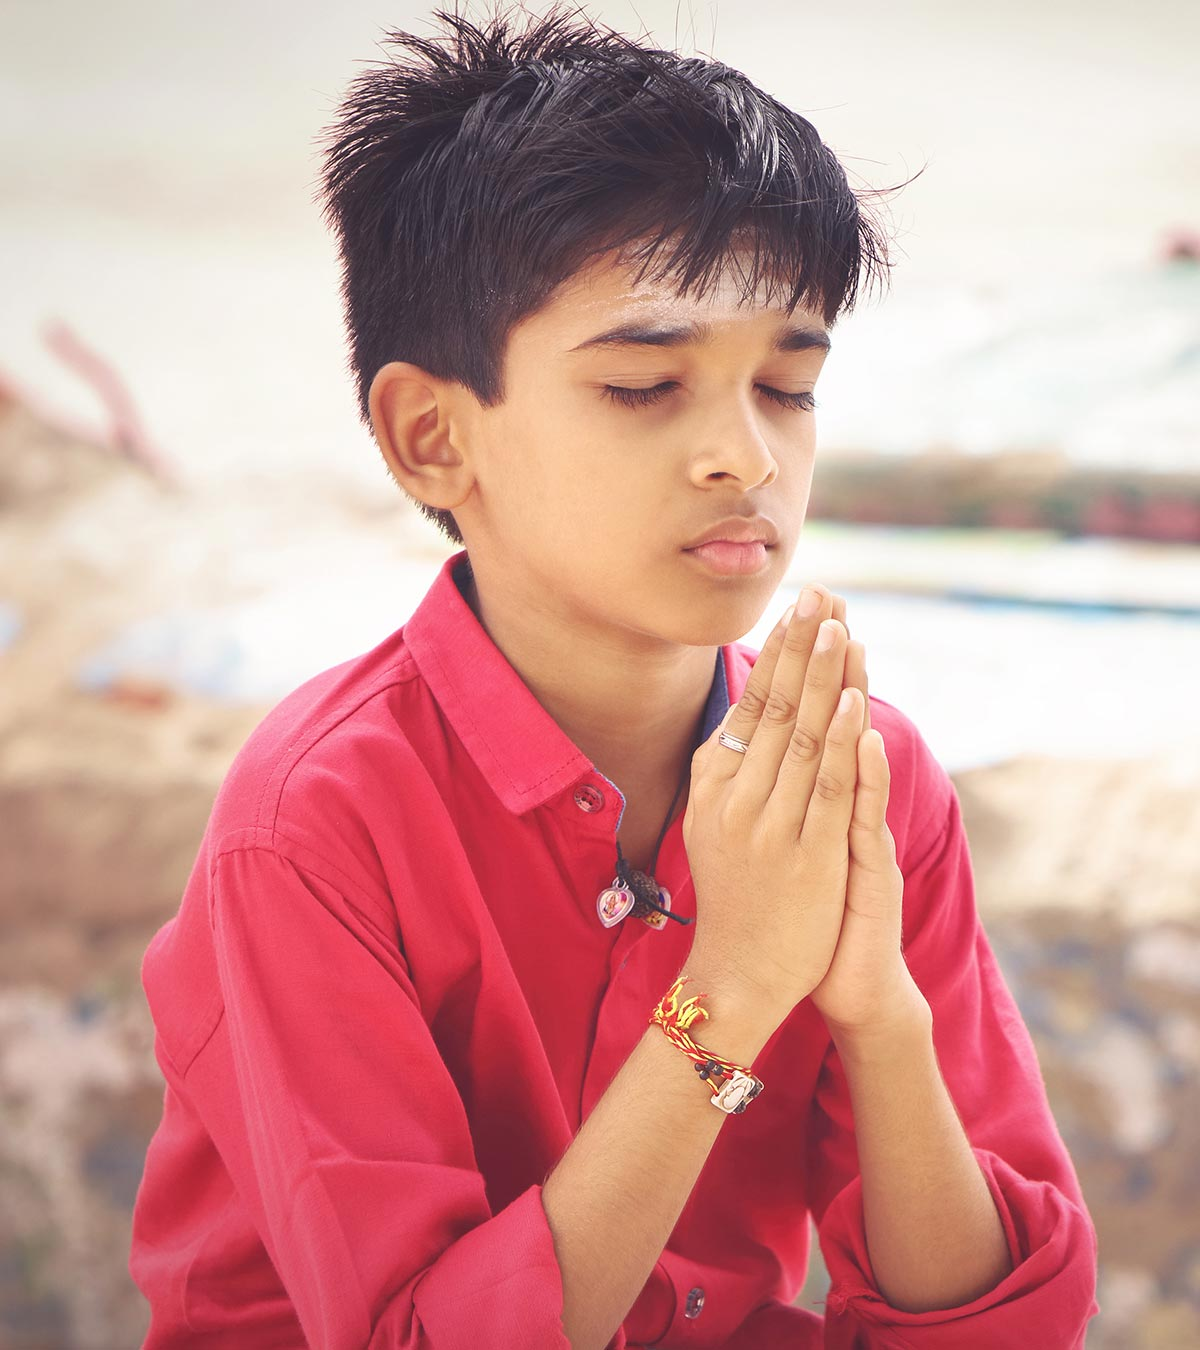 17 Easy Sanskrit Slokas For Kids To Learn